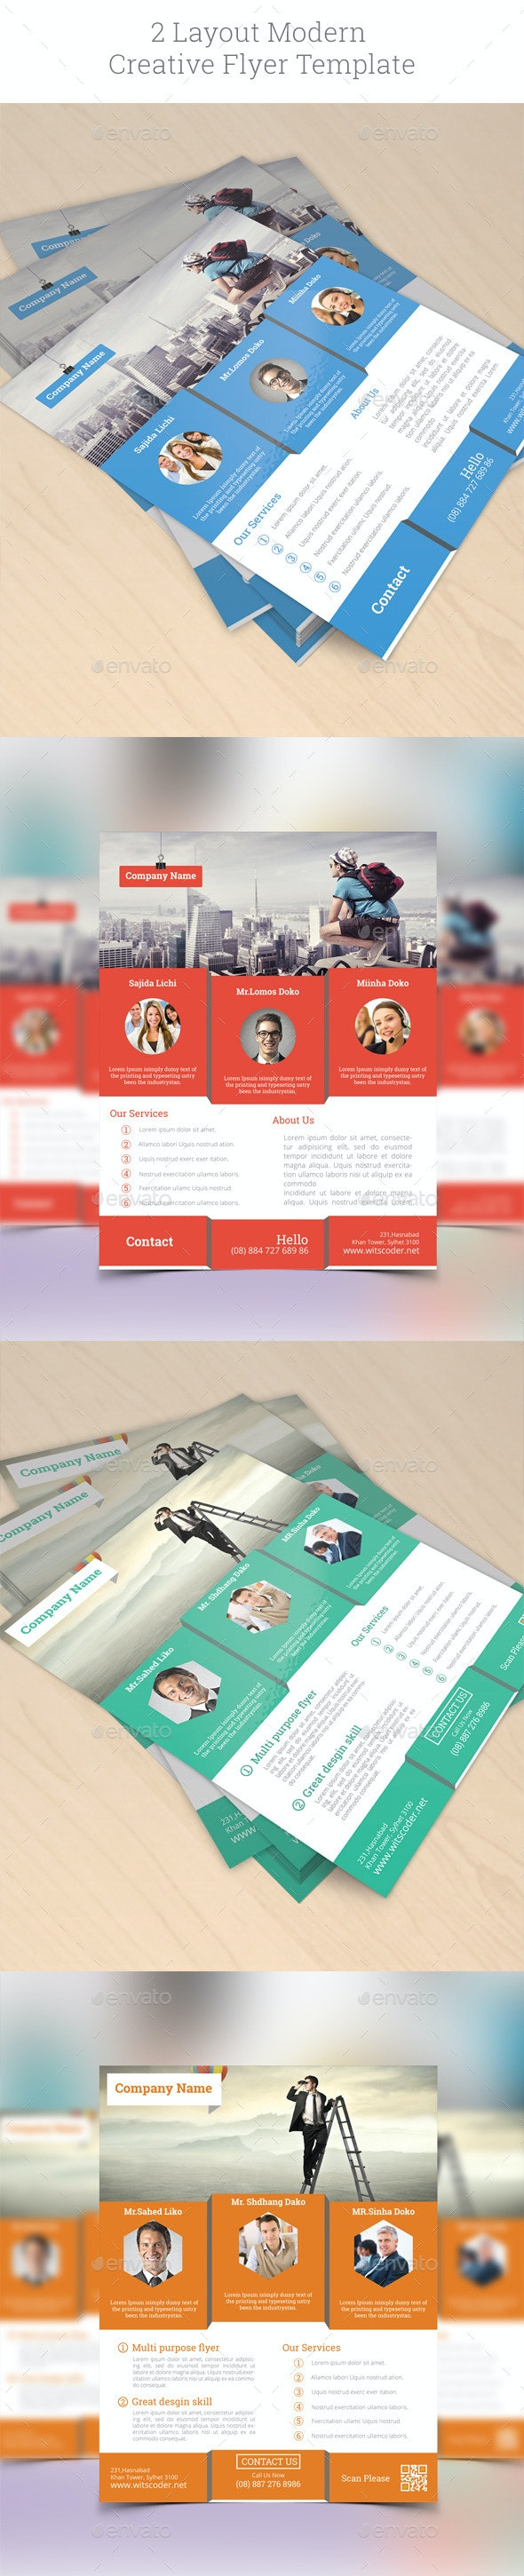 2 Layout Modern & Creative Flyer Template - Corporate Flyers